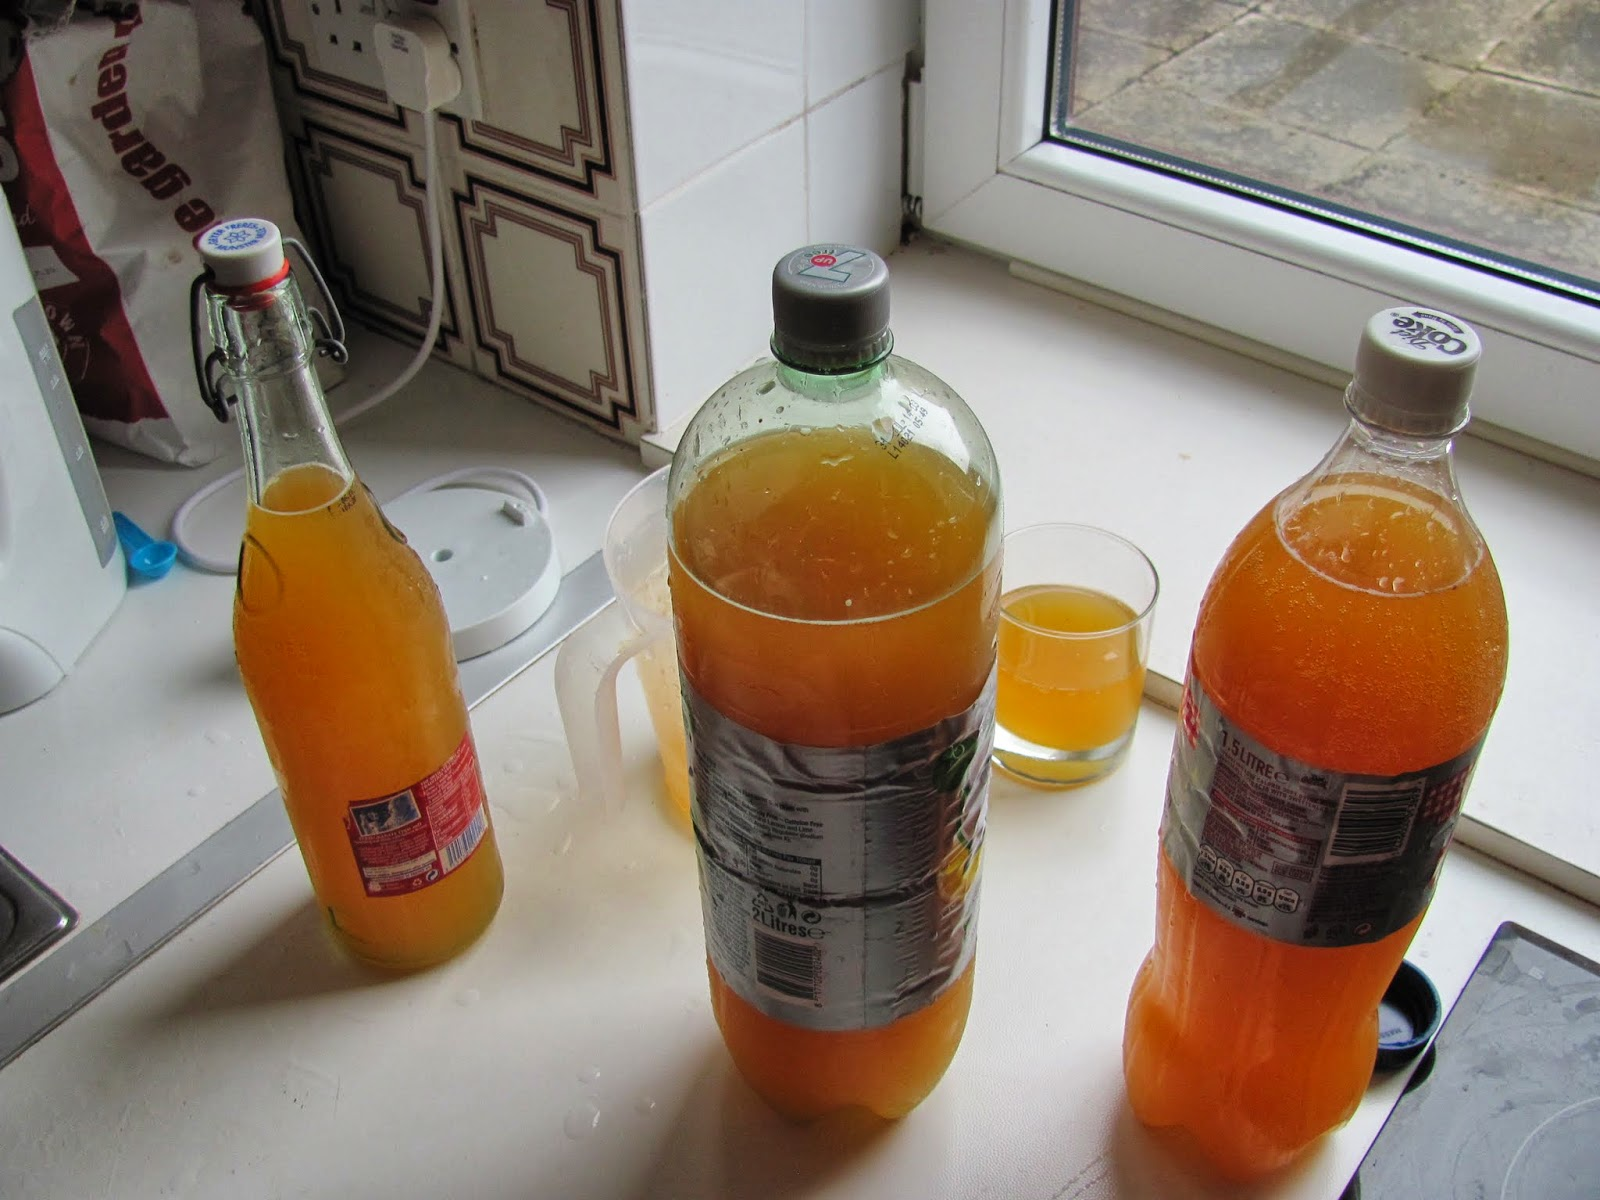 Filled Cider Bottles